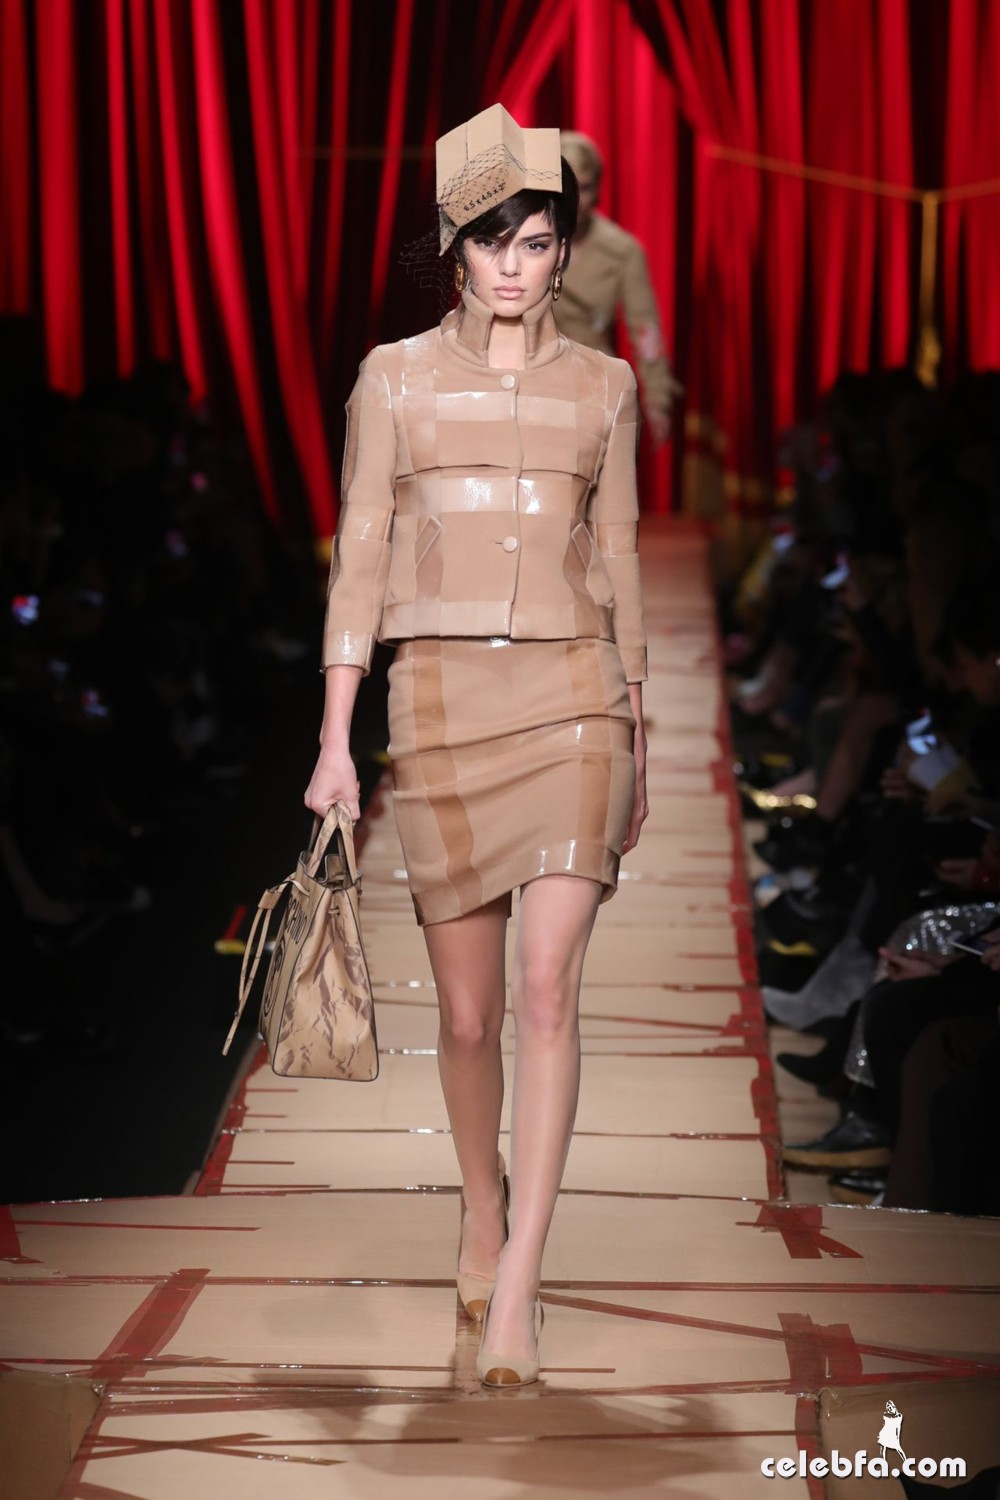 kendall-jenner-hit-the-catwalk-for-moschino-milan-fashion-week-4